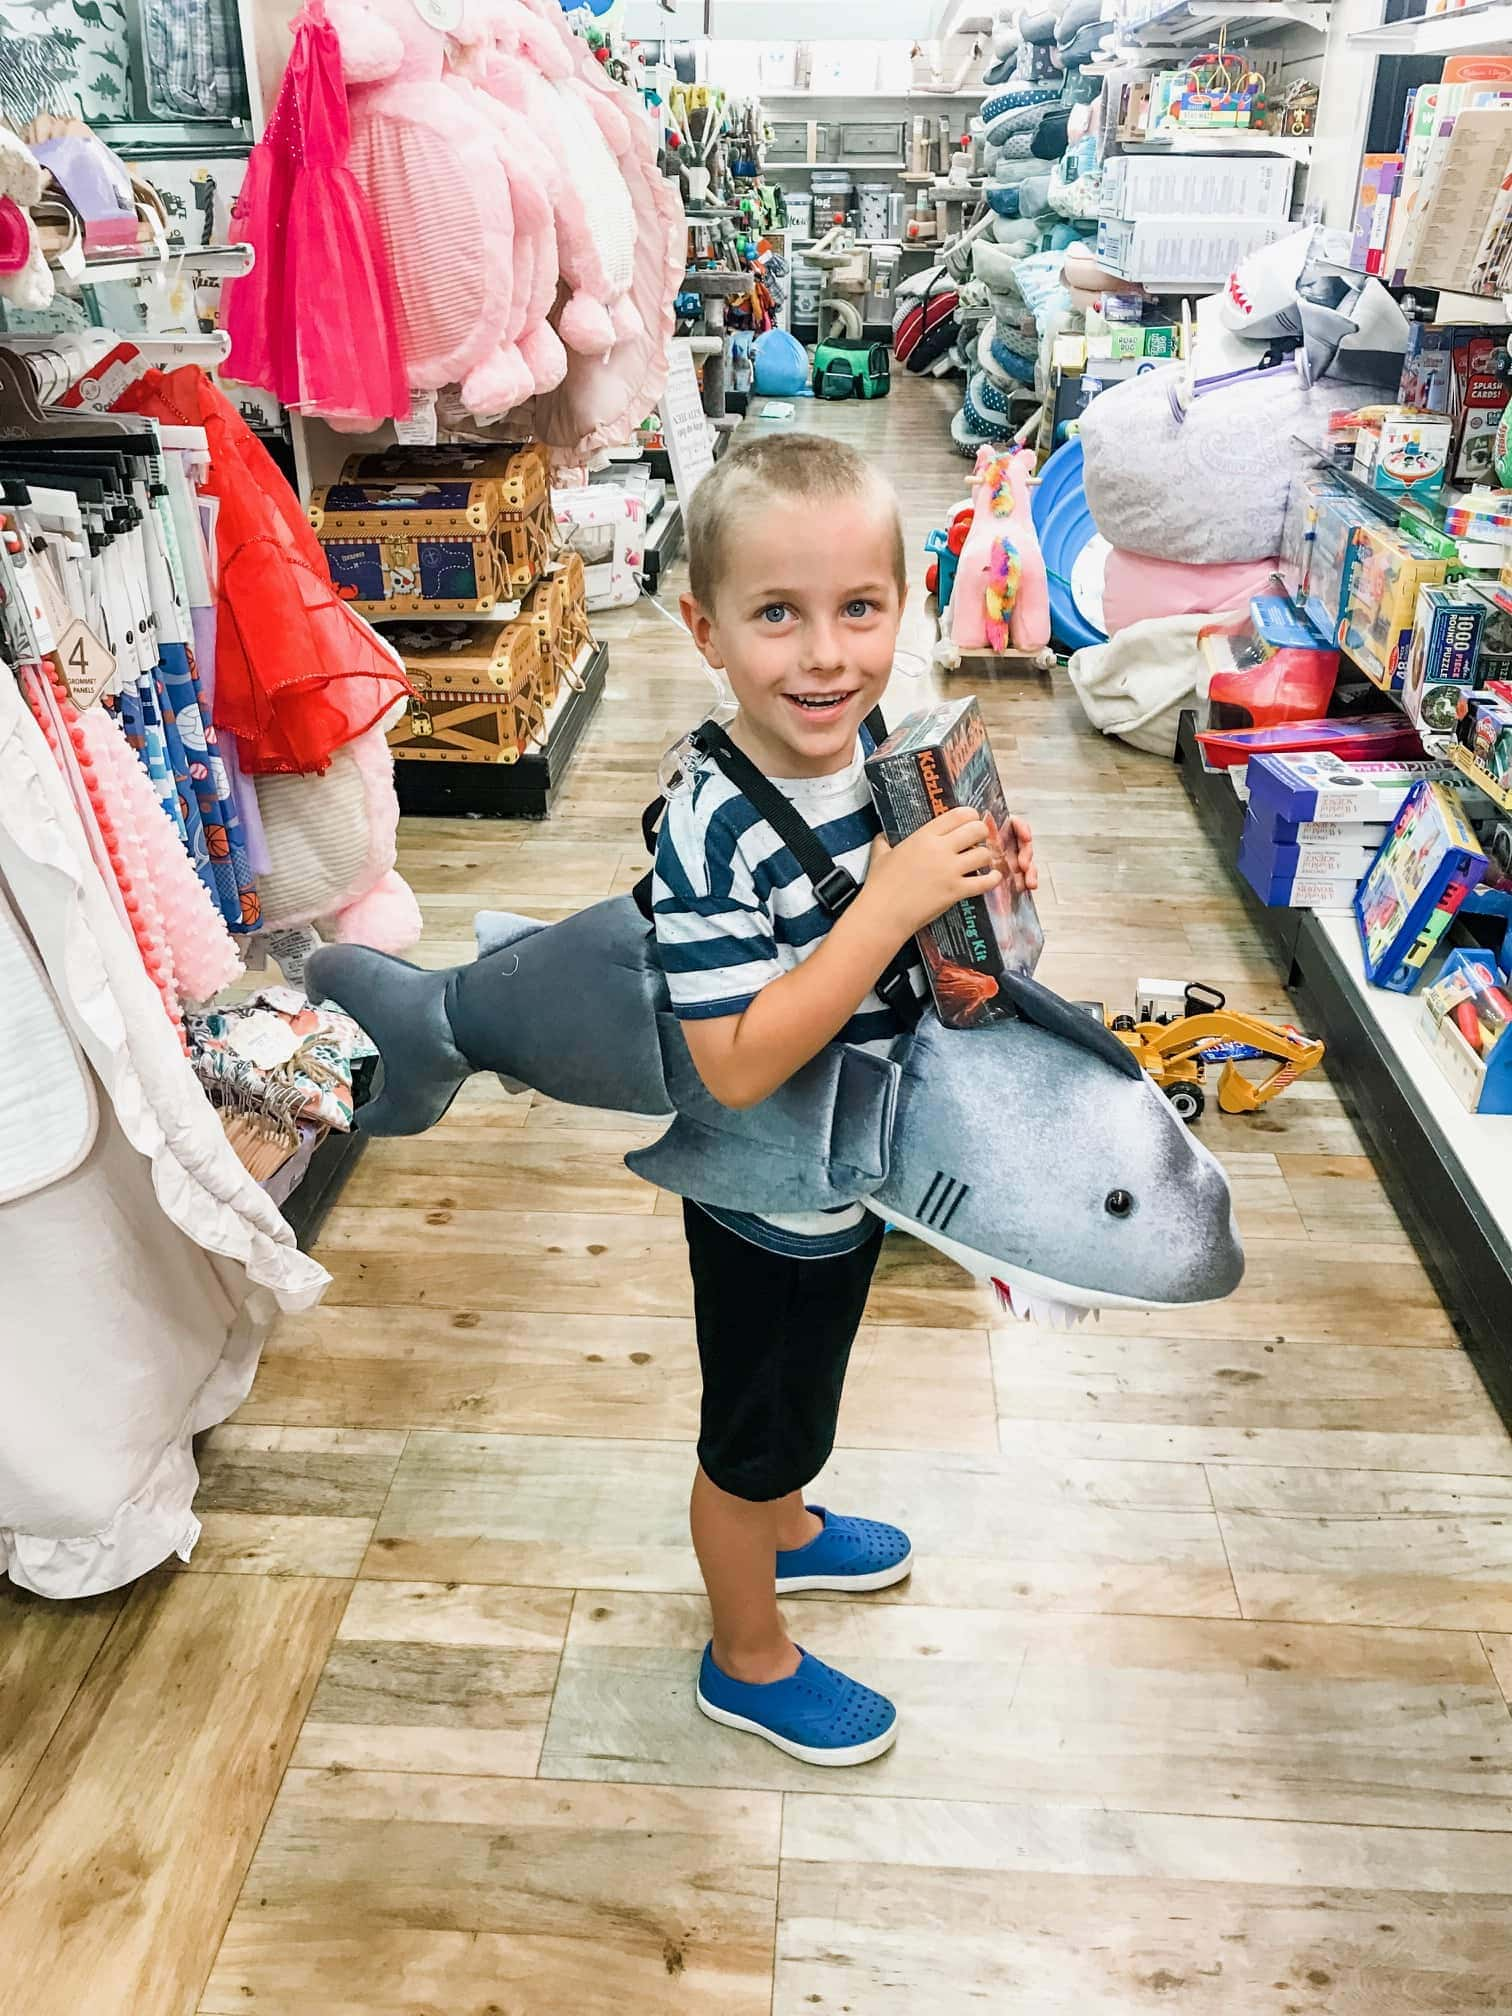 Blake dressed as a shark in a store